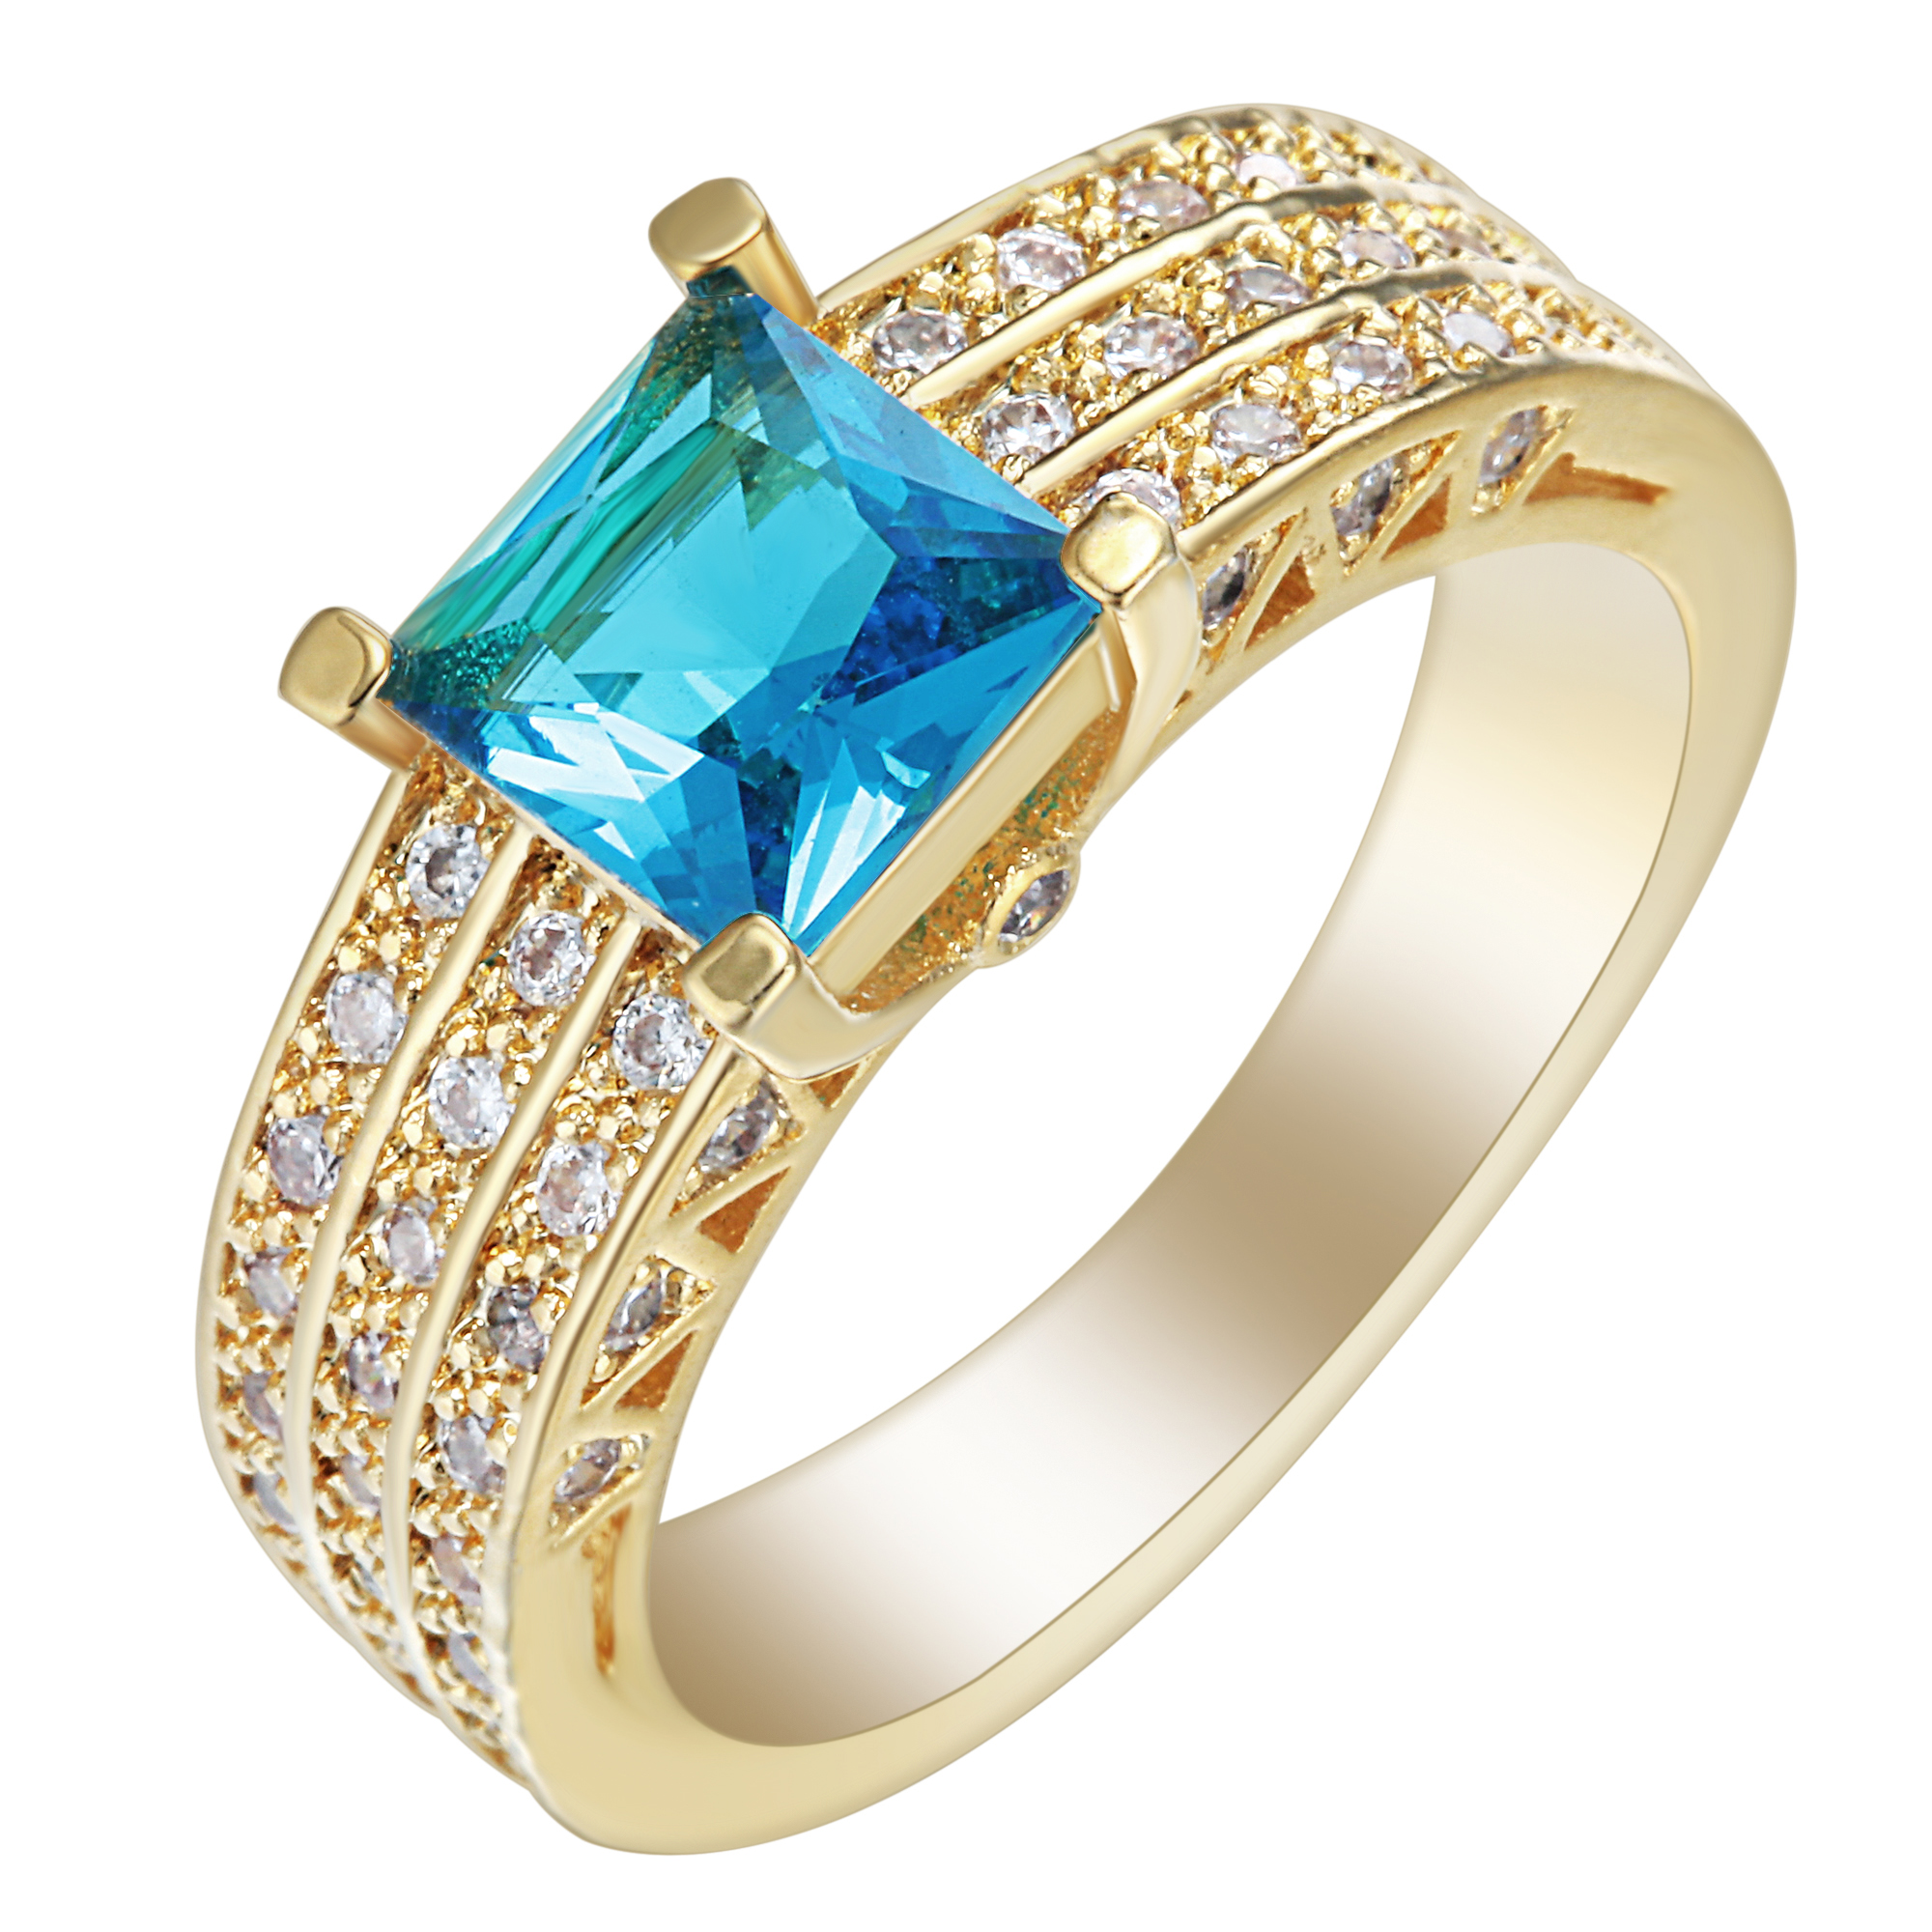 stone rectangular ring mccaul goldsmiths hand commission spinel rings gold blue with carve carved